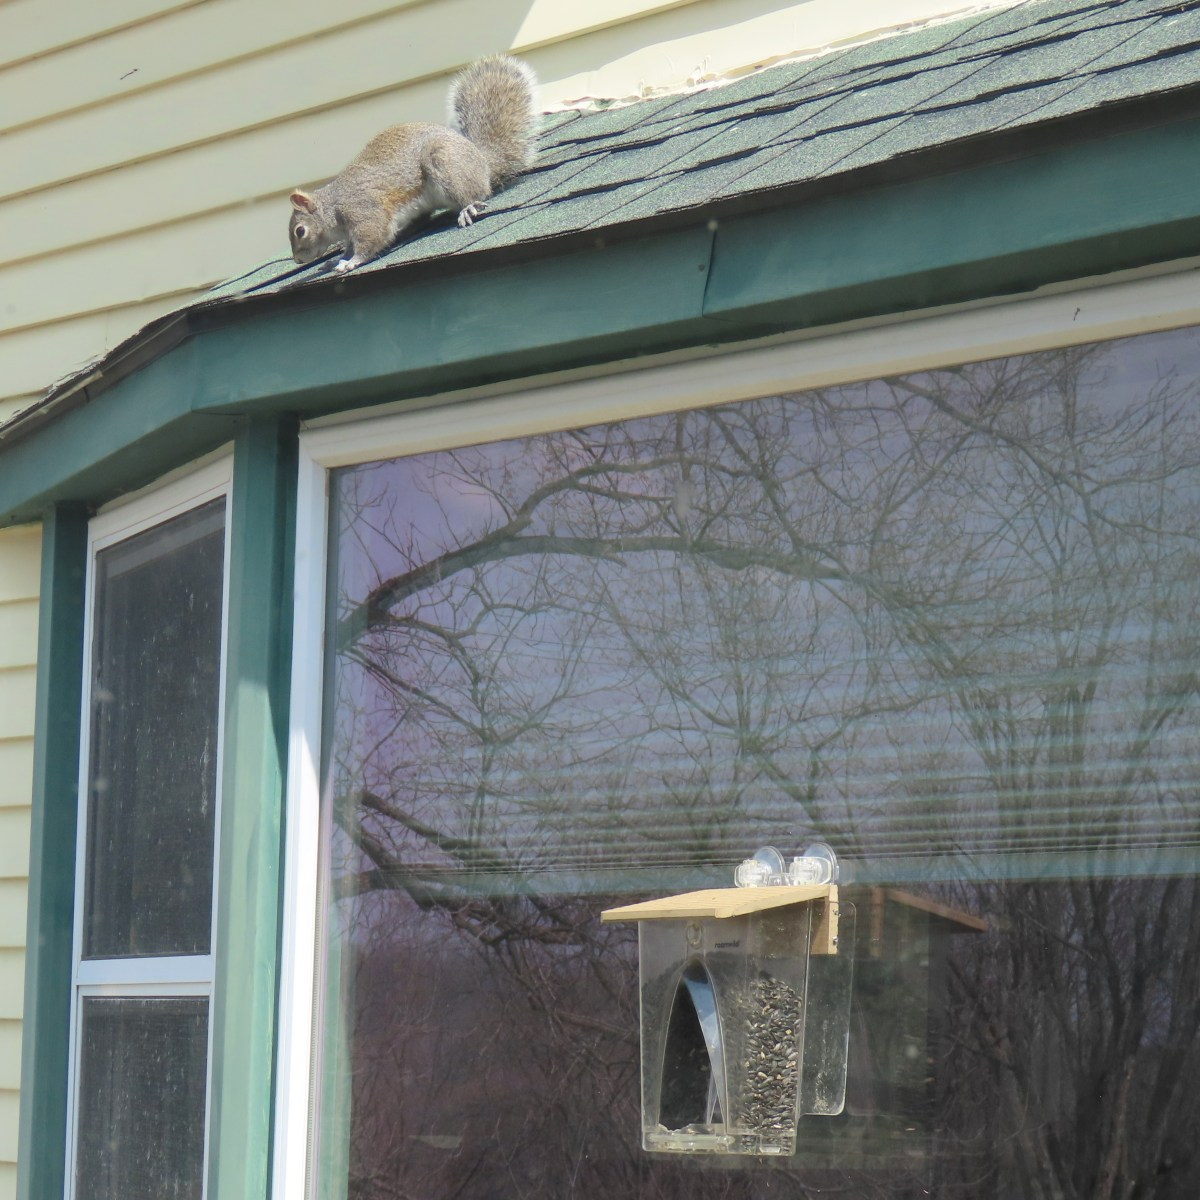 A gray squirrel on roof looks down onto a window bird feeder